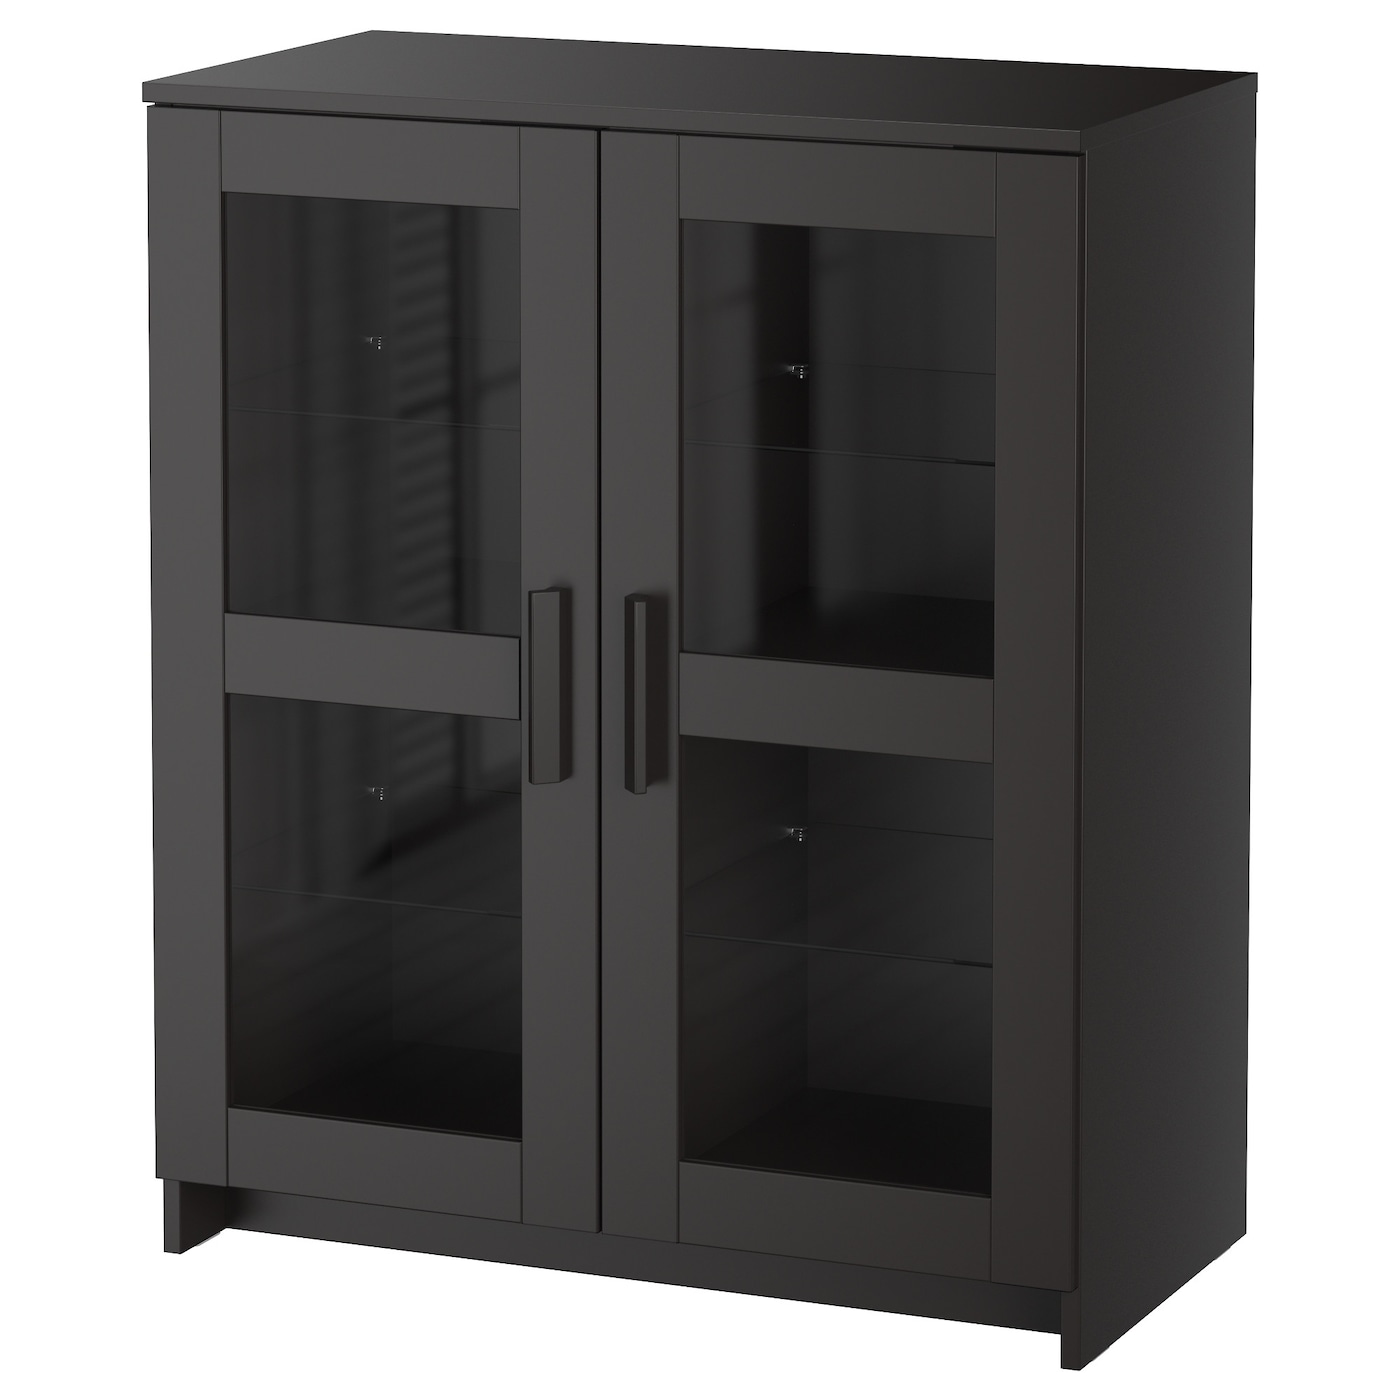 Brimnes cabinet with doors glass black 78x95 cm ikea - Ikea cabinet doors on existing cabinets ...